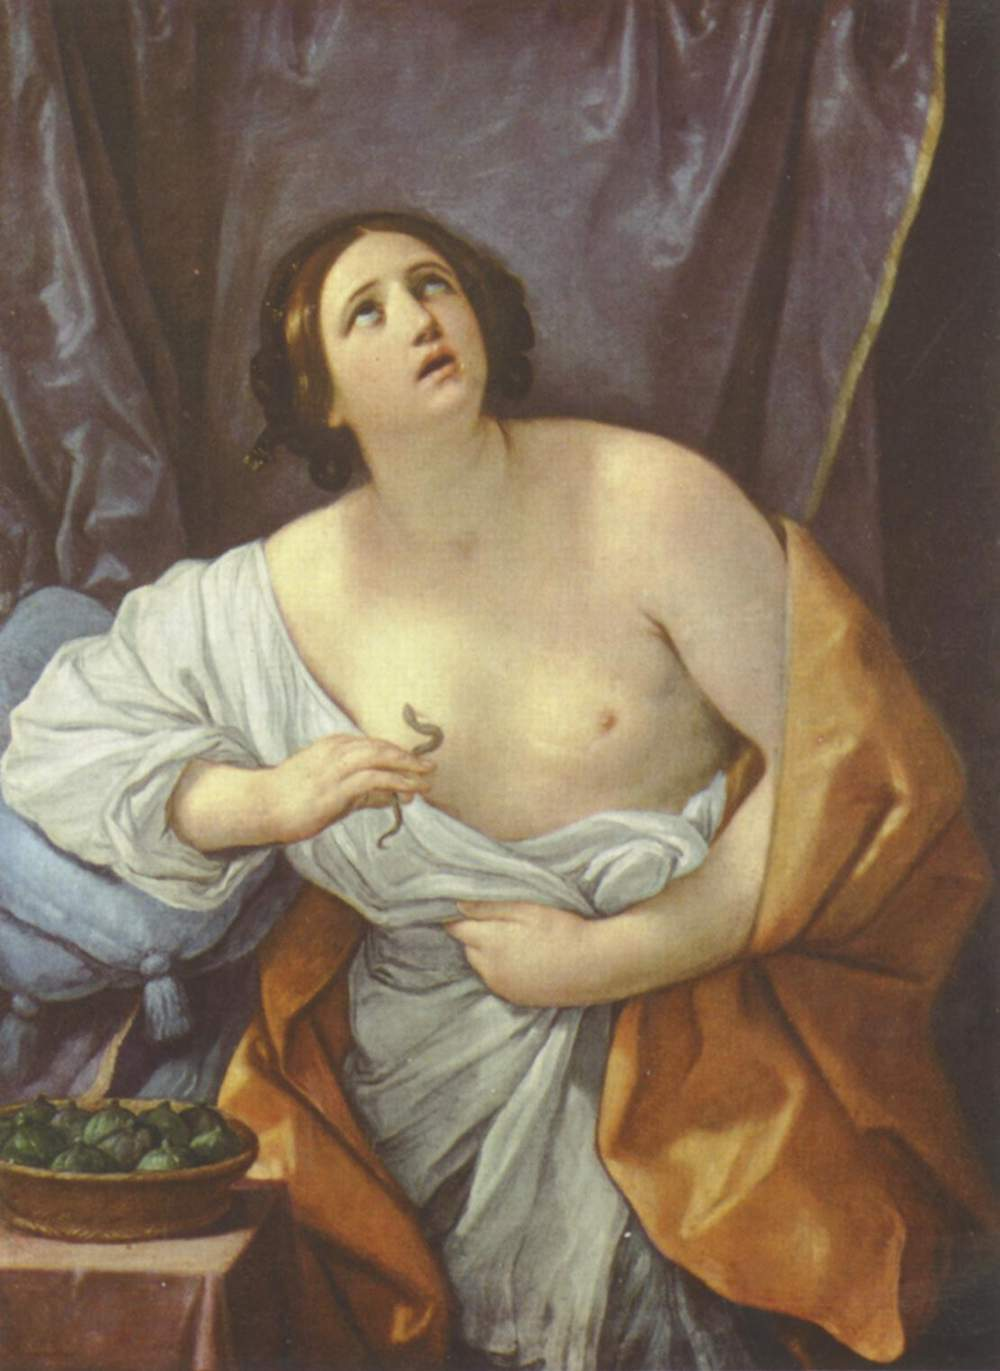 http://uploads8.wikiart.org/images/guido-reni/cleopatra.jpg